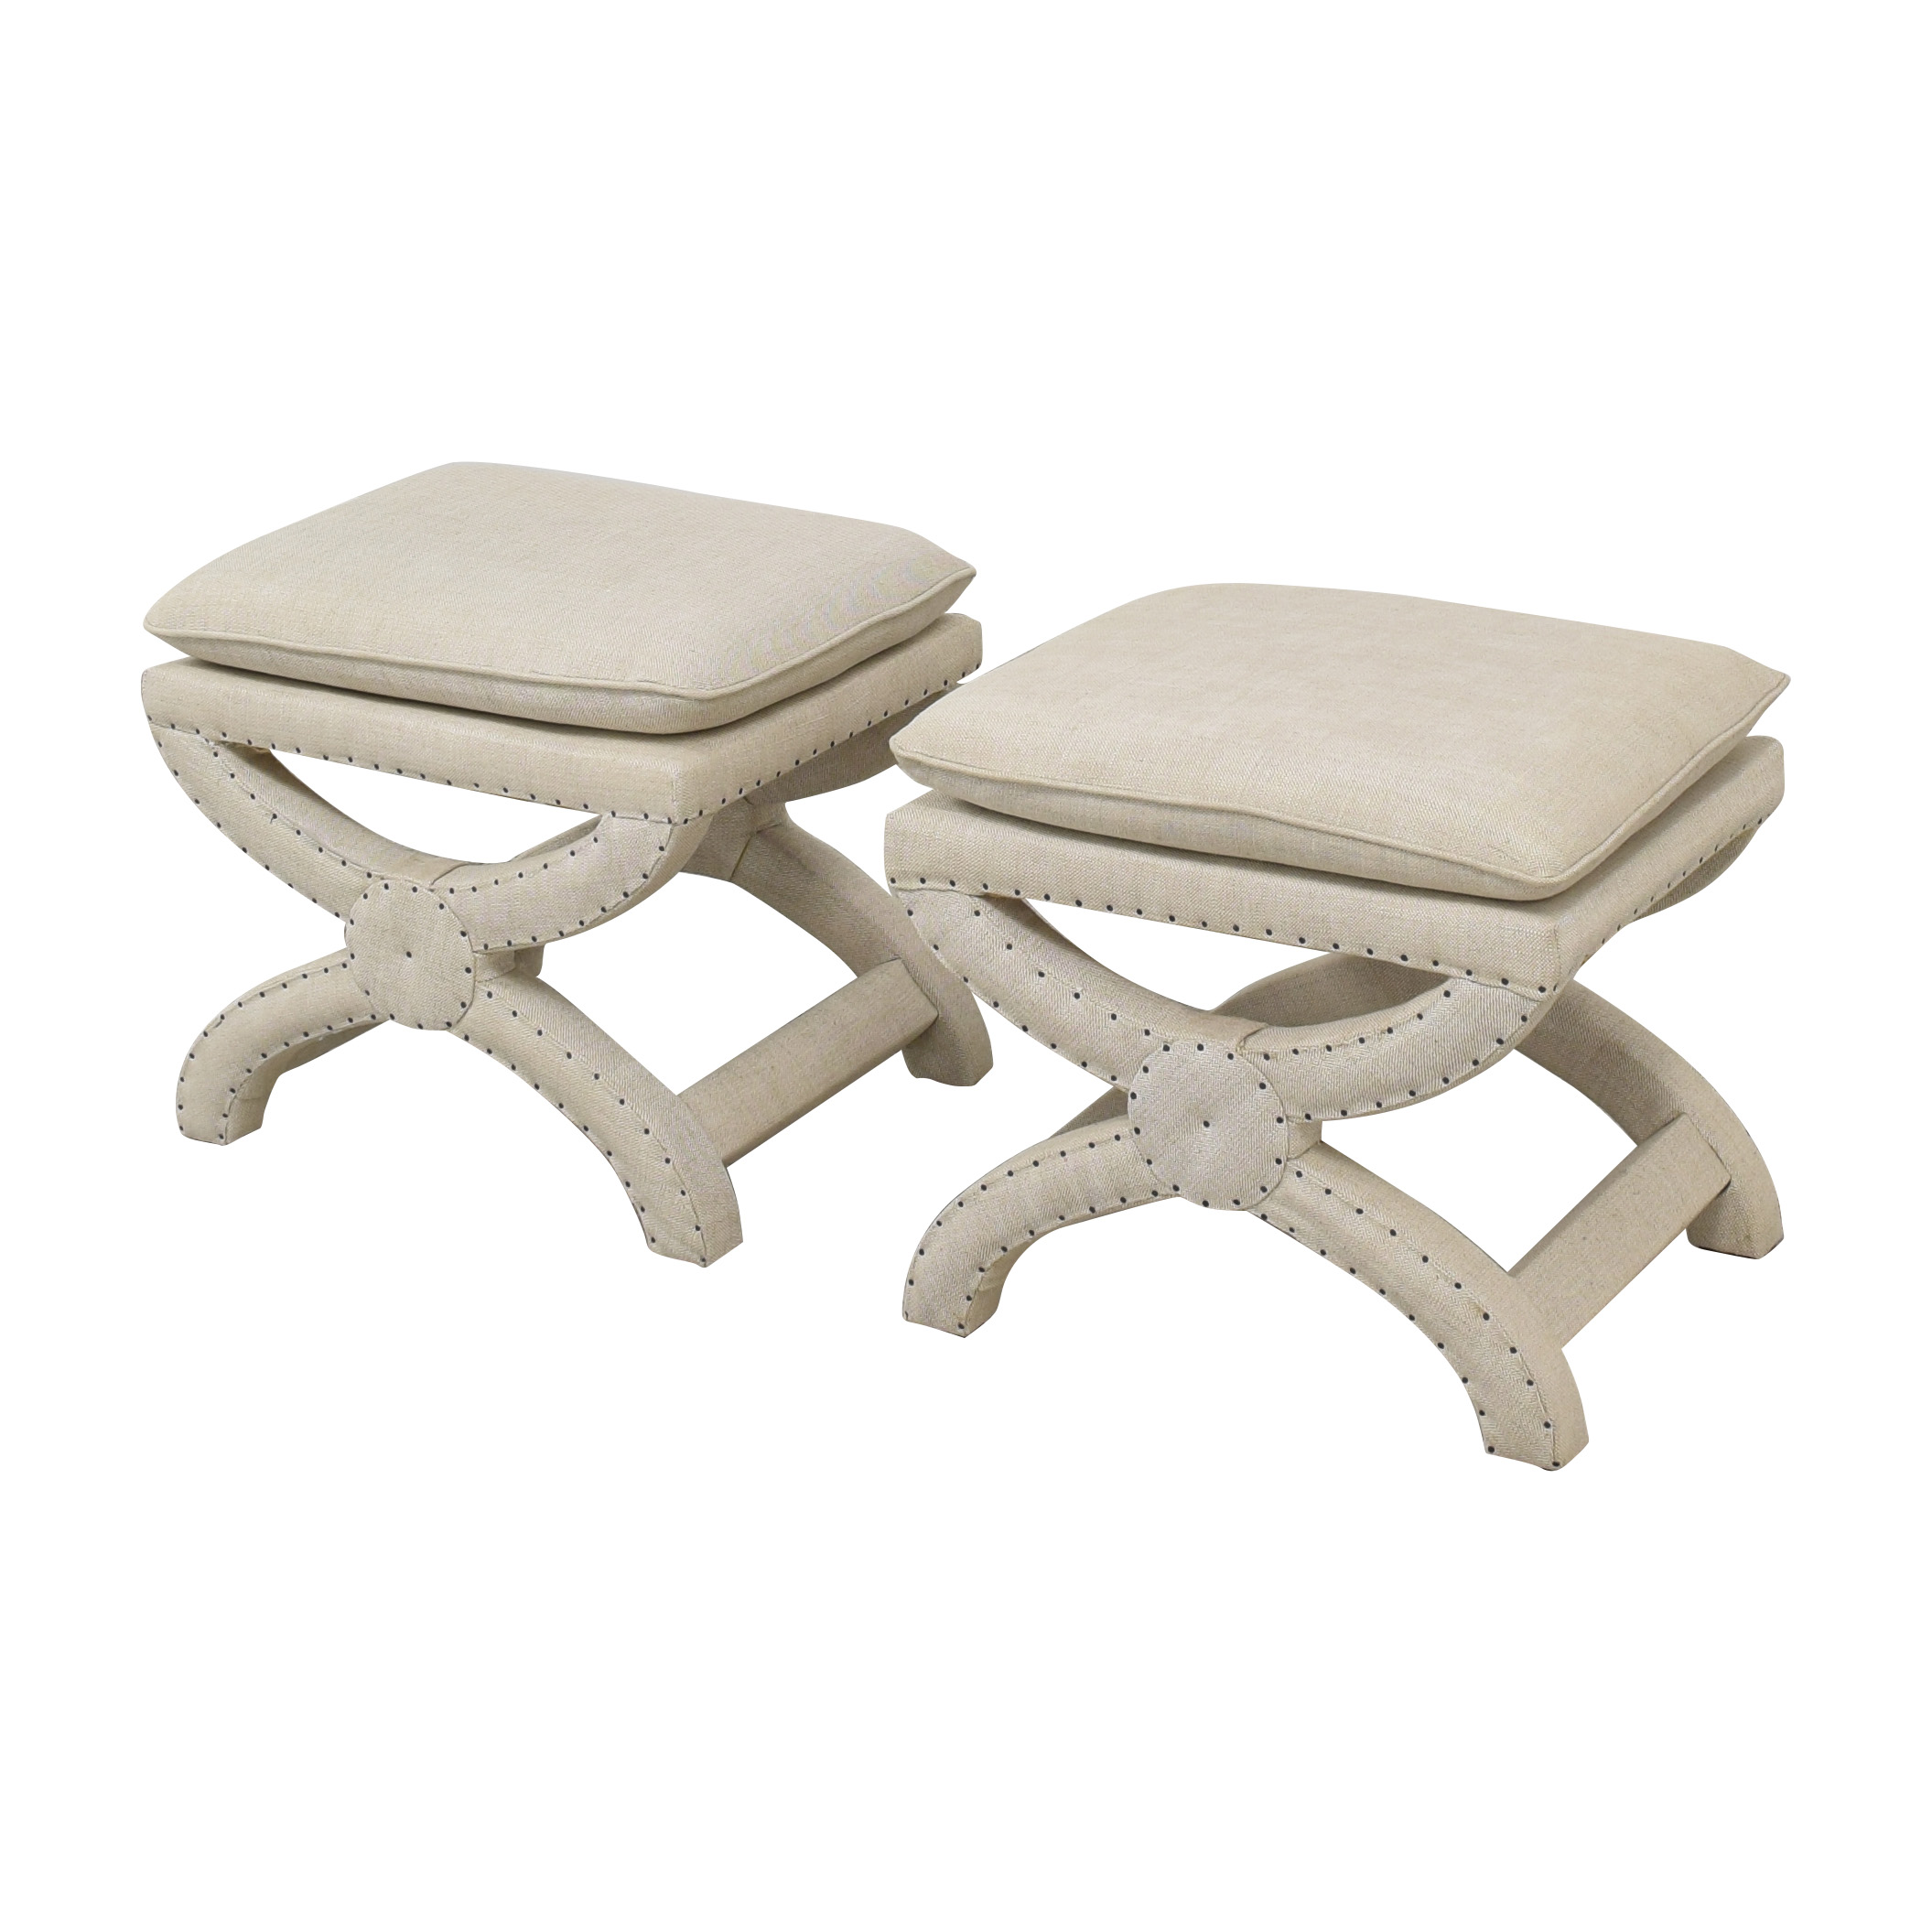 buy Restoration Hardware Toscane Nailhead Stools Restoration Hardware Stools